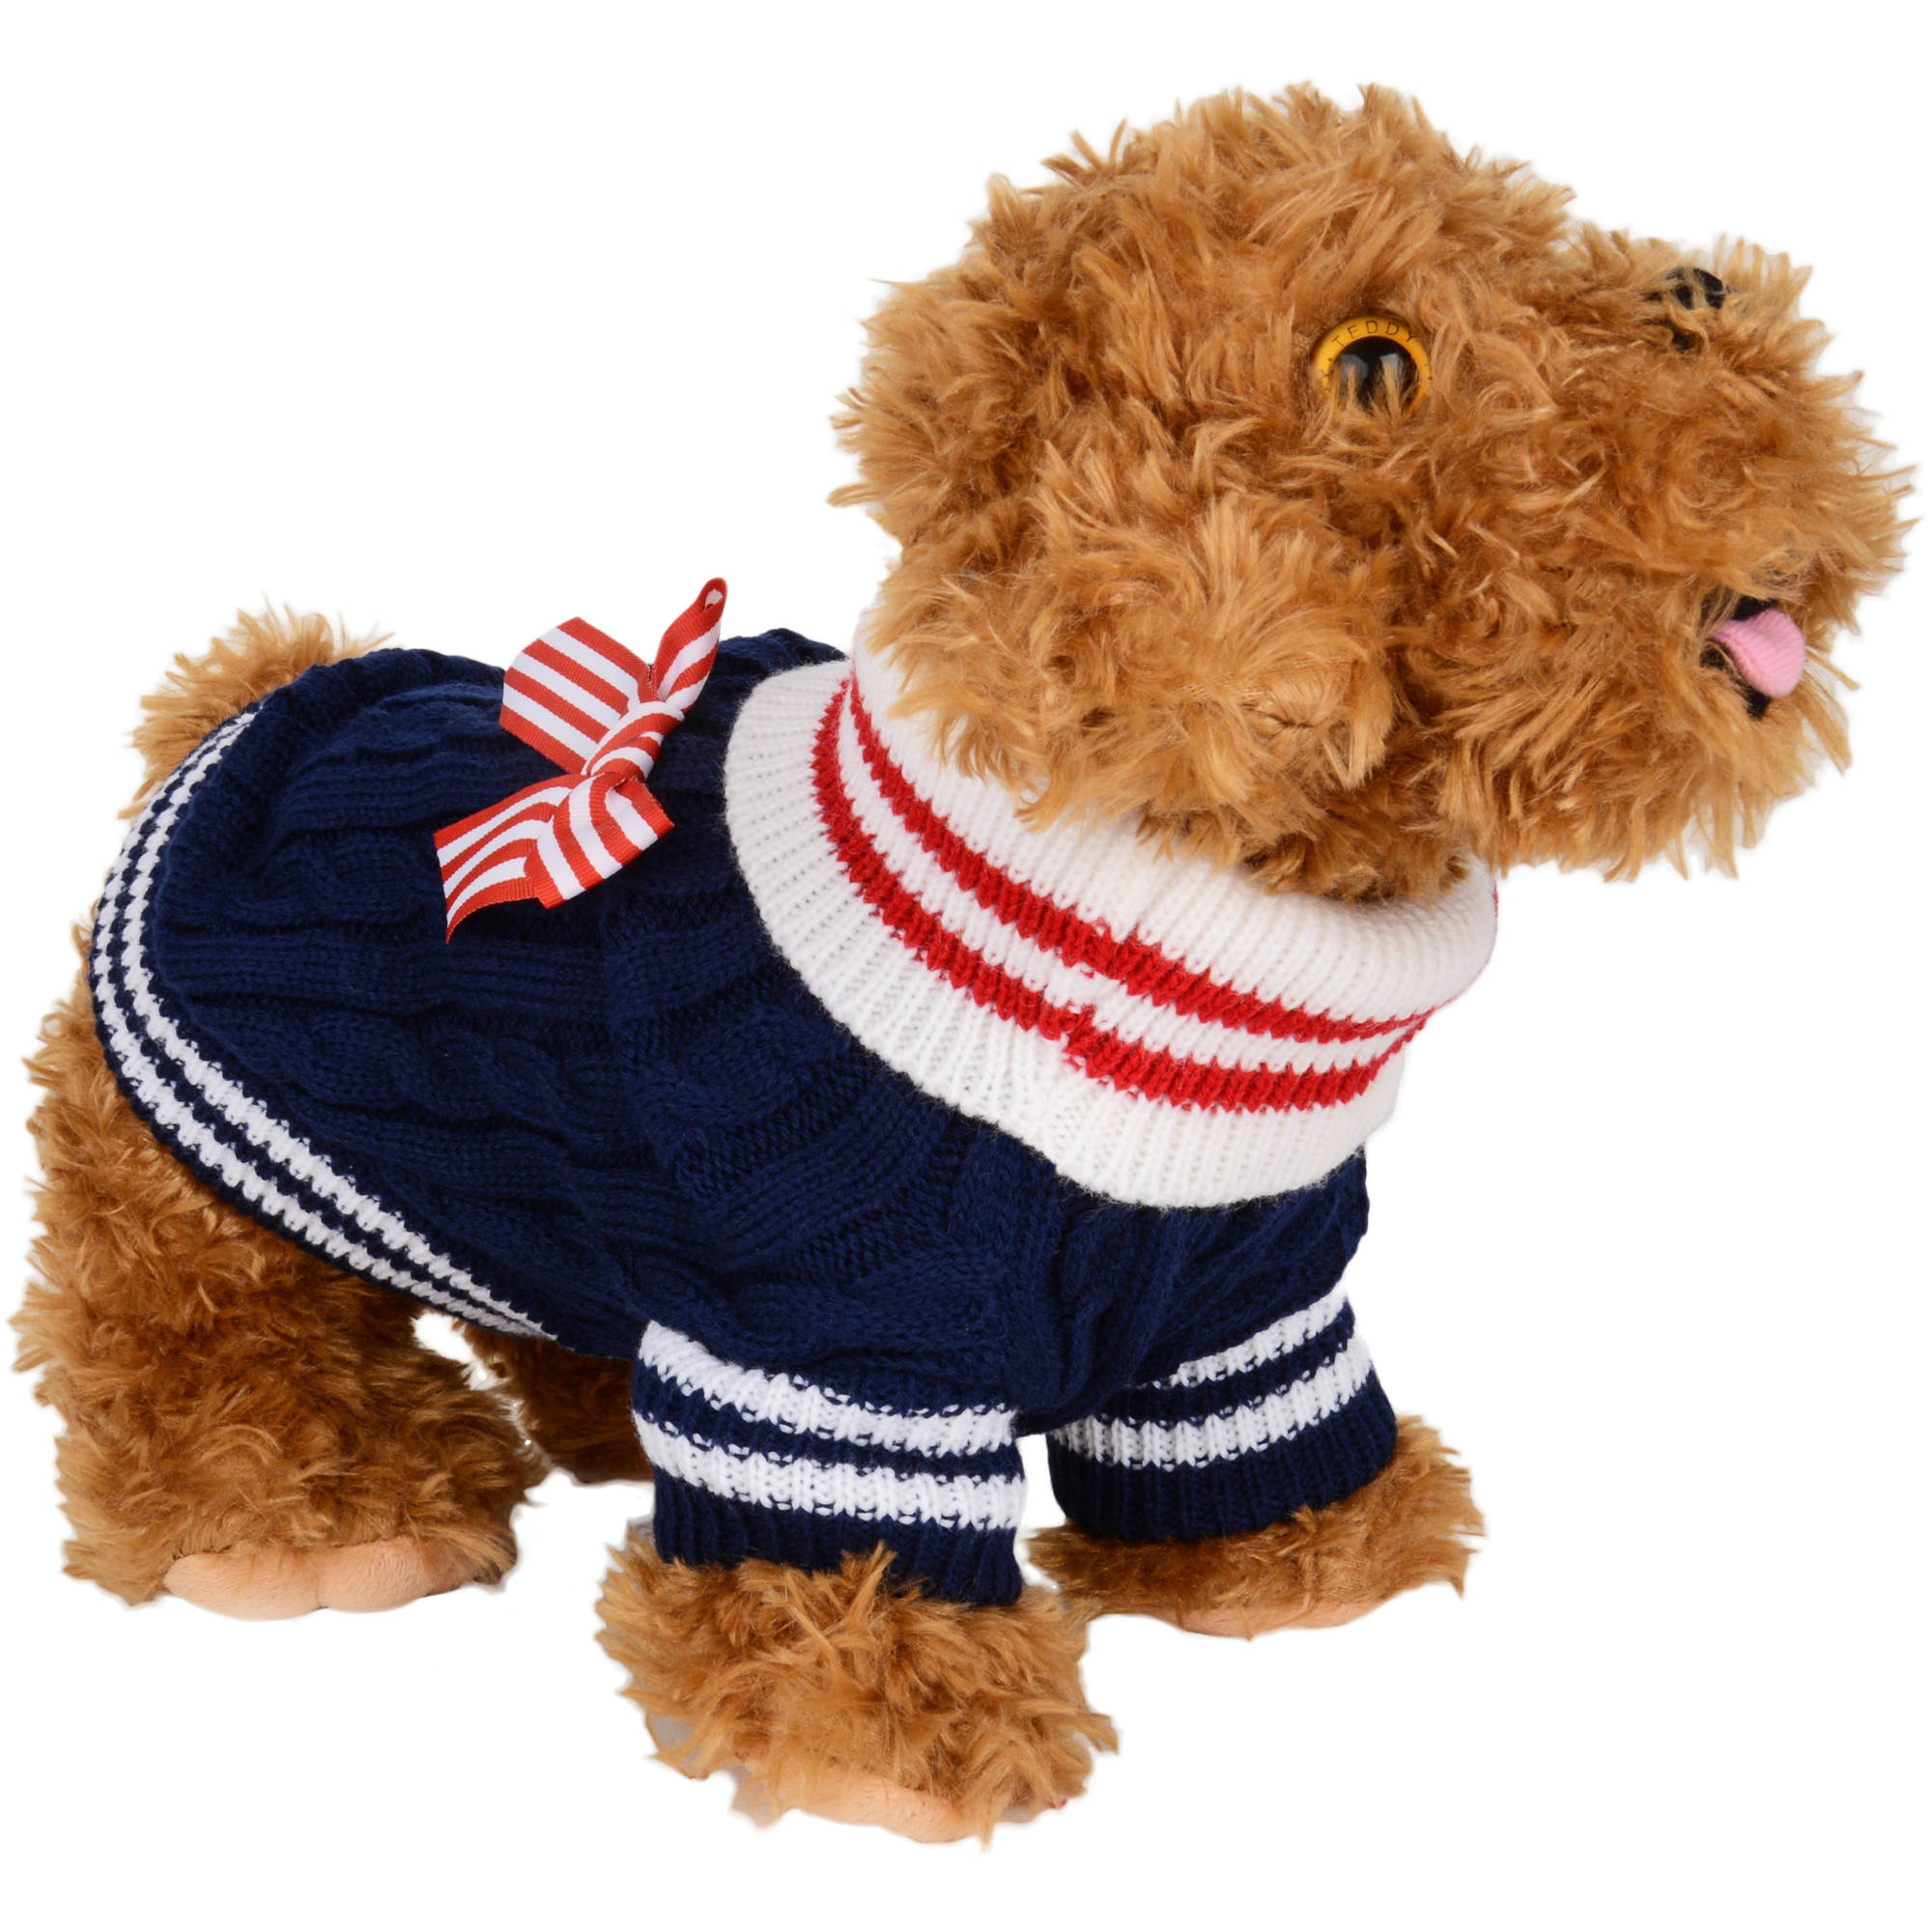 CUECUEPET Gender Neutral Cotton Dog Sweater with Bow